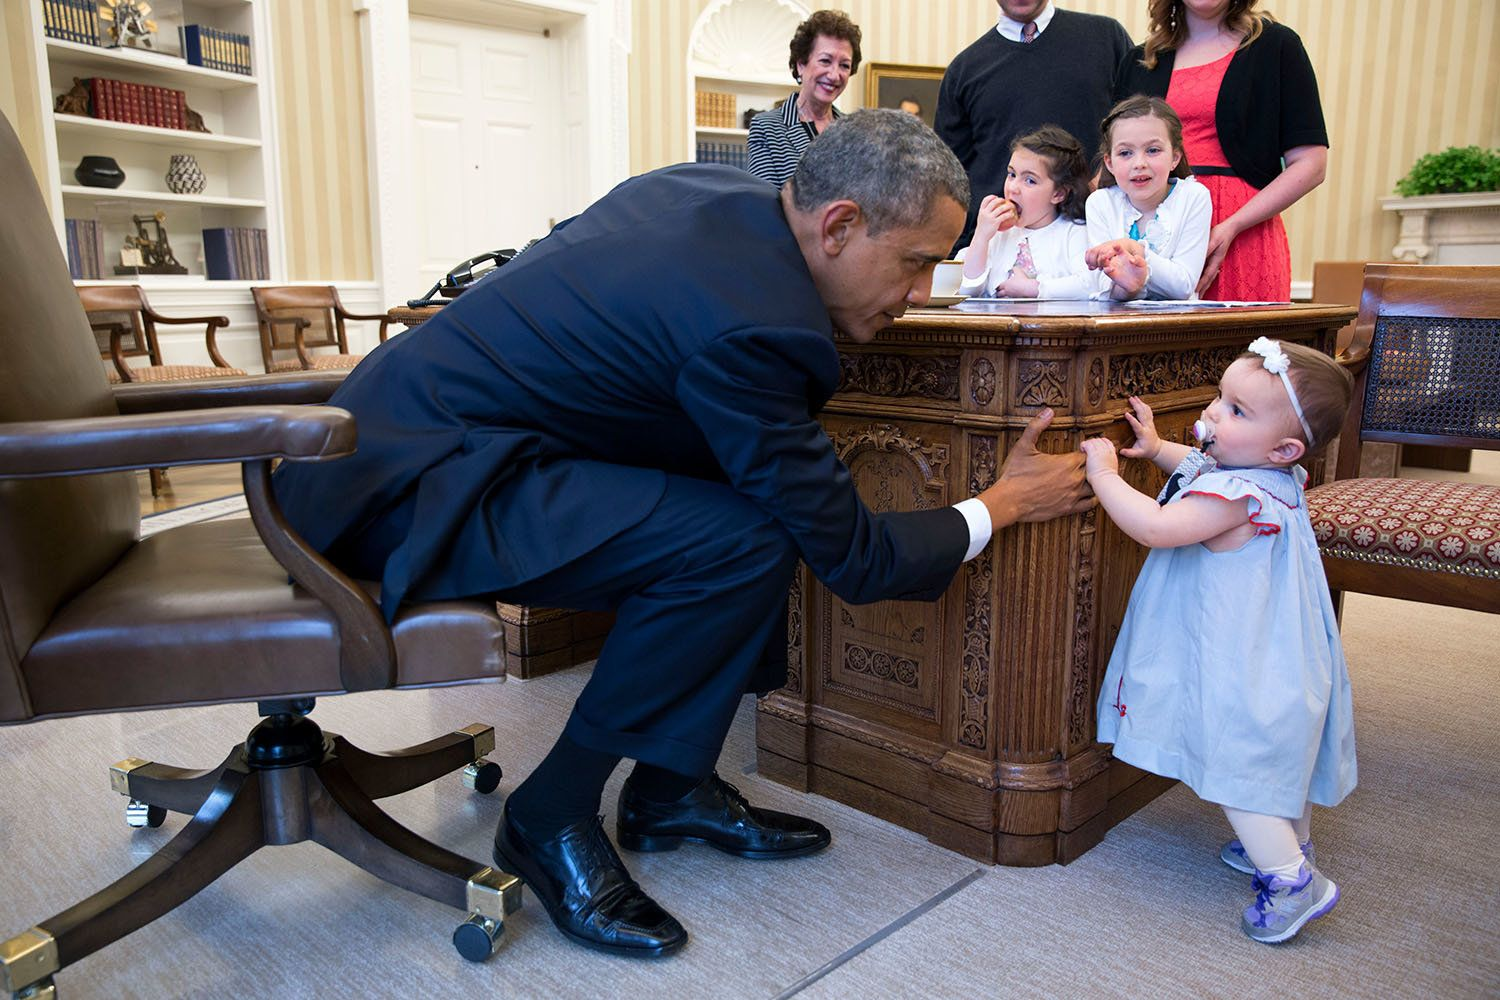 Obamas Most Adorable Moments Are The Ones He Shares With Kids